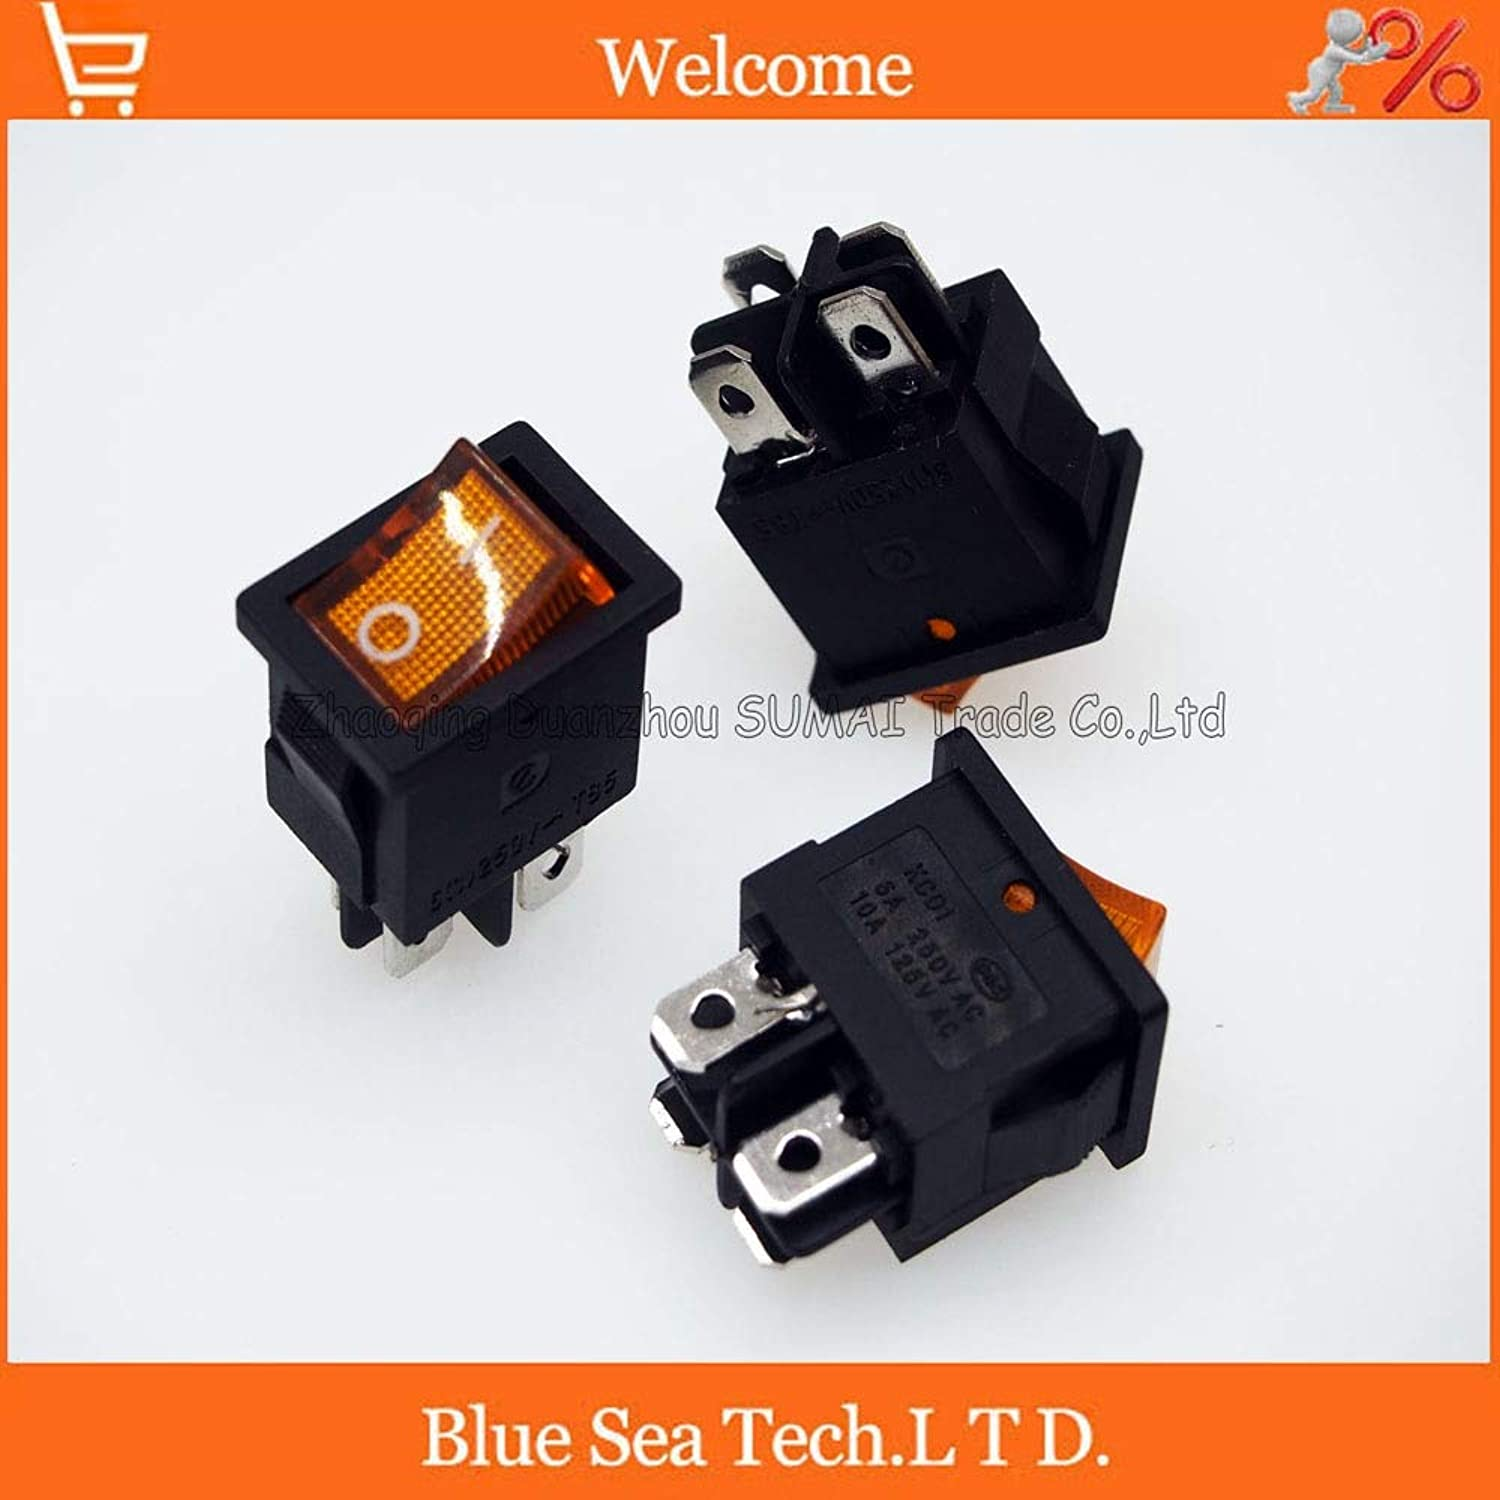 4 Pin LUMINATED Rocker Switch Yellow Light Button Switch for Power,car etc. 10A 125VAC,6A  250VAC,21  15mm  (color  10 PCS)